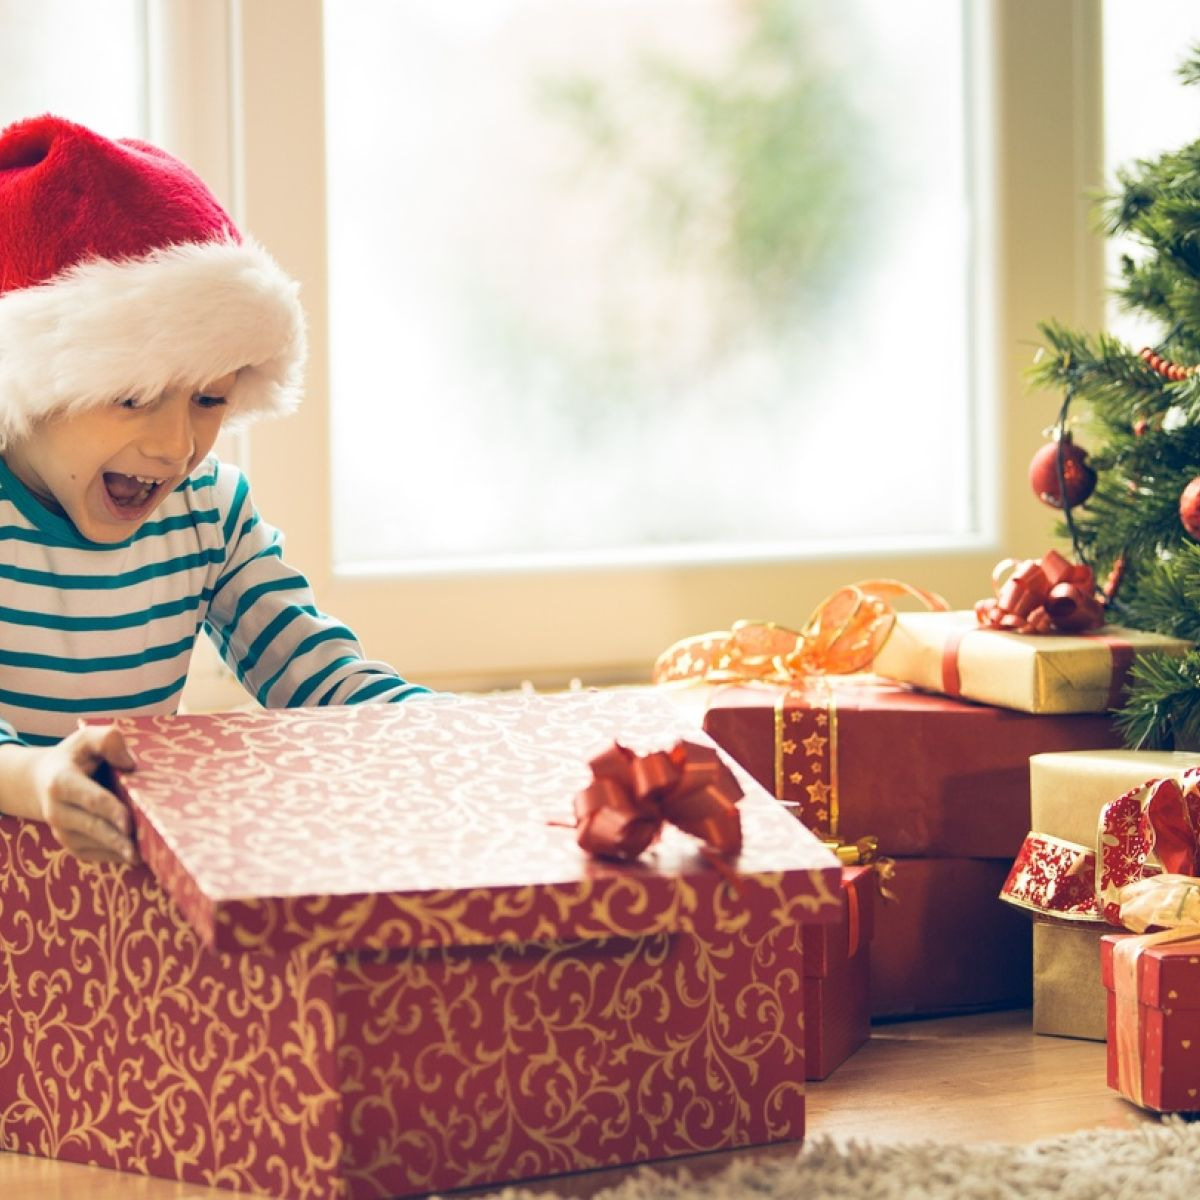 Christmas Gifts For Kids.Looking For Last Minute Gifts For Kids Here Are Seven Shops